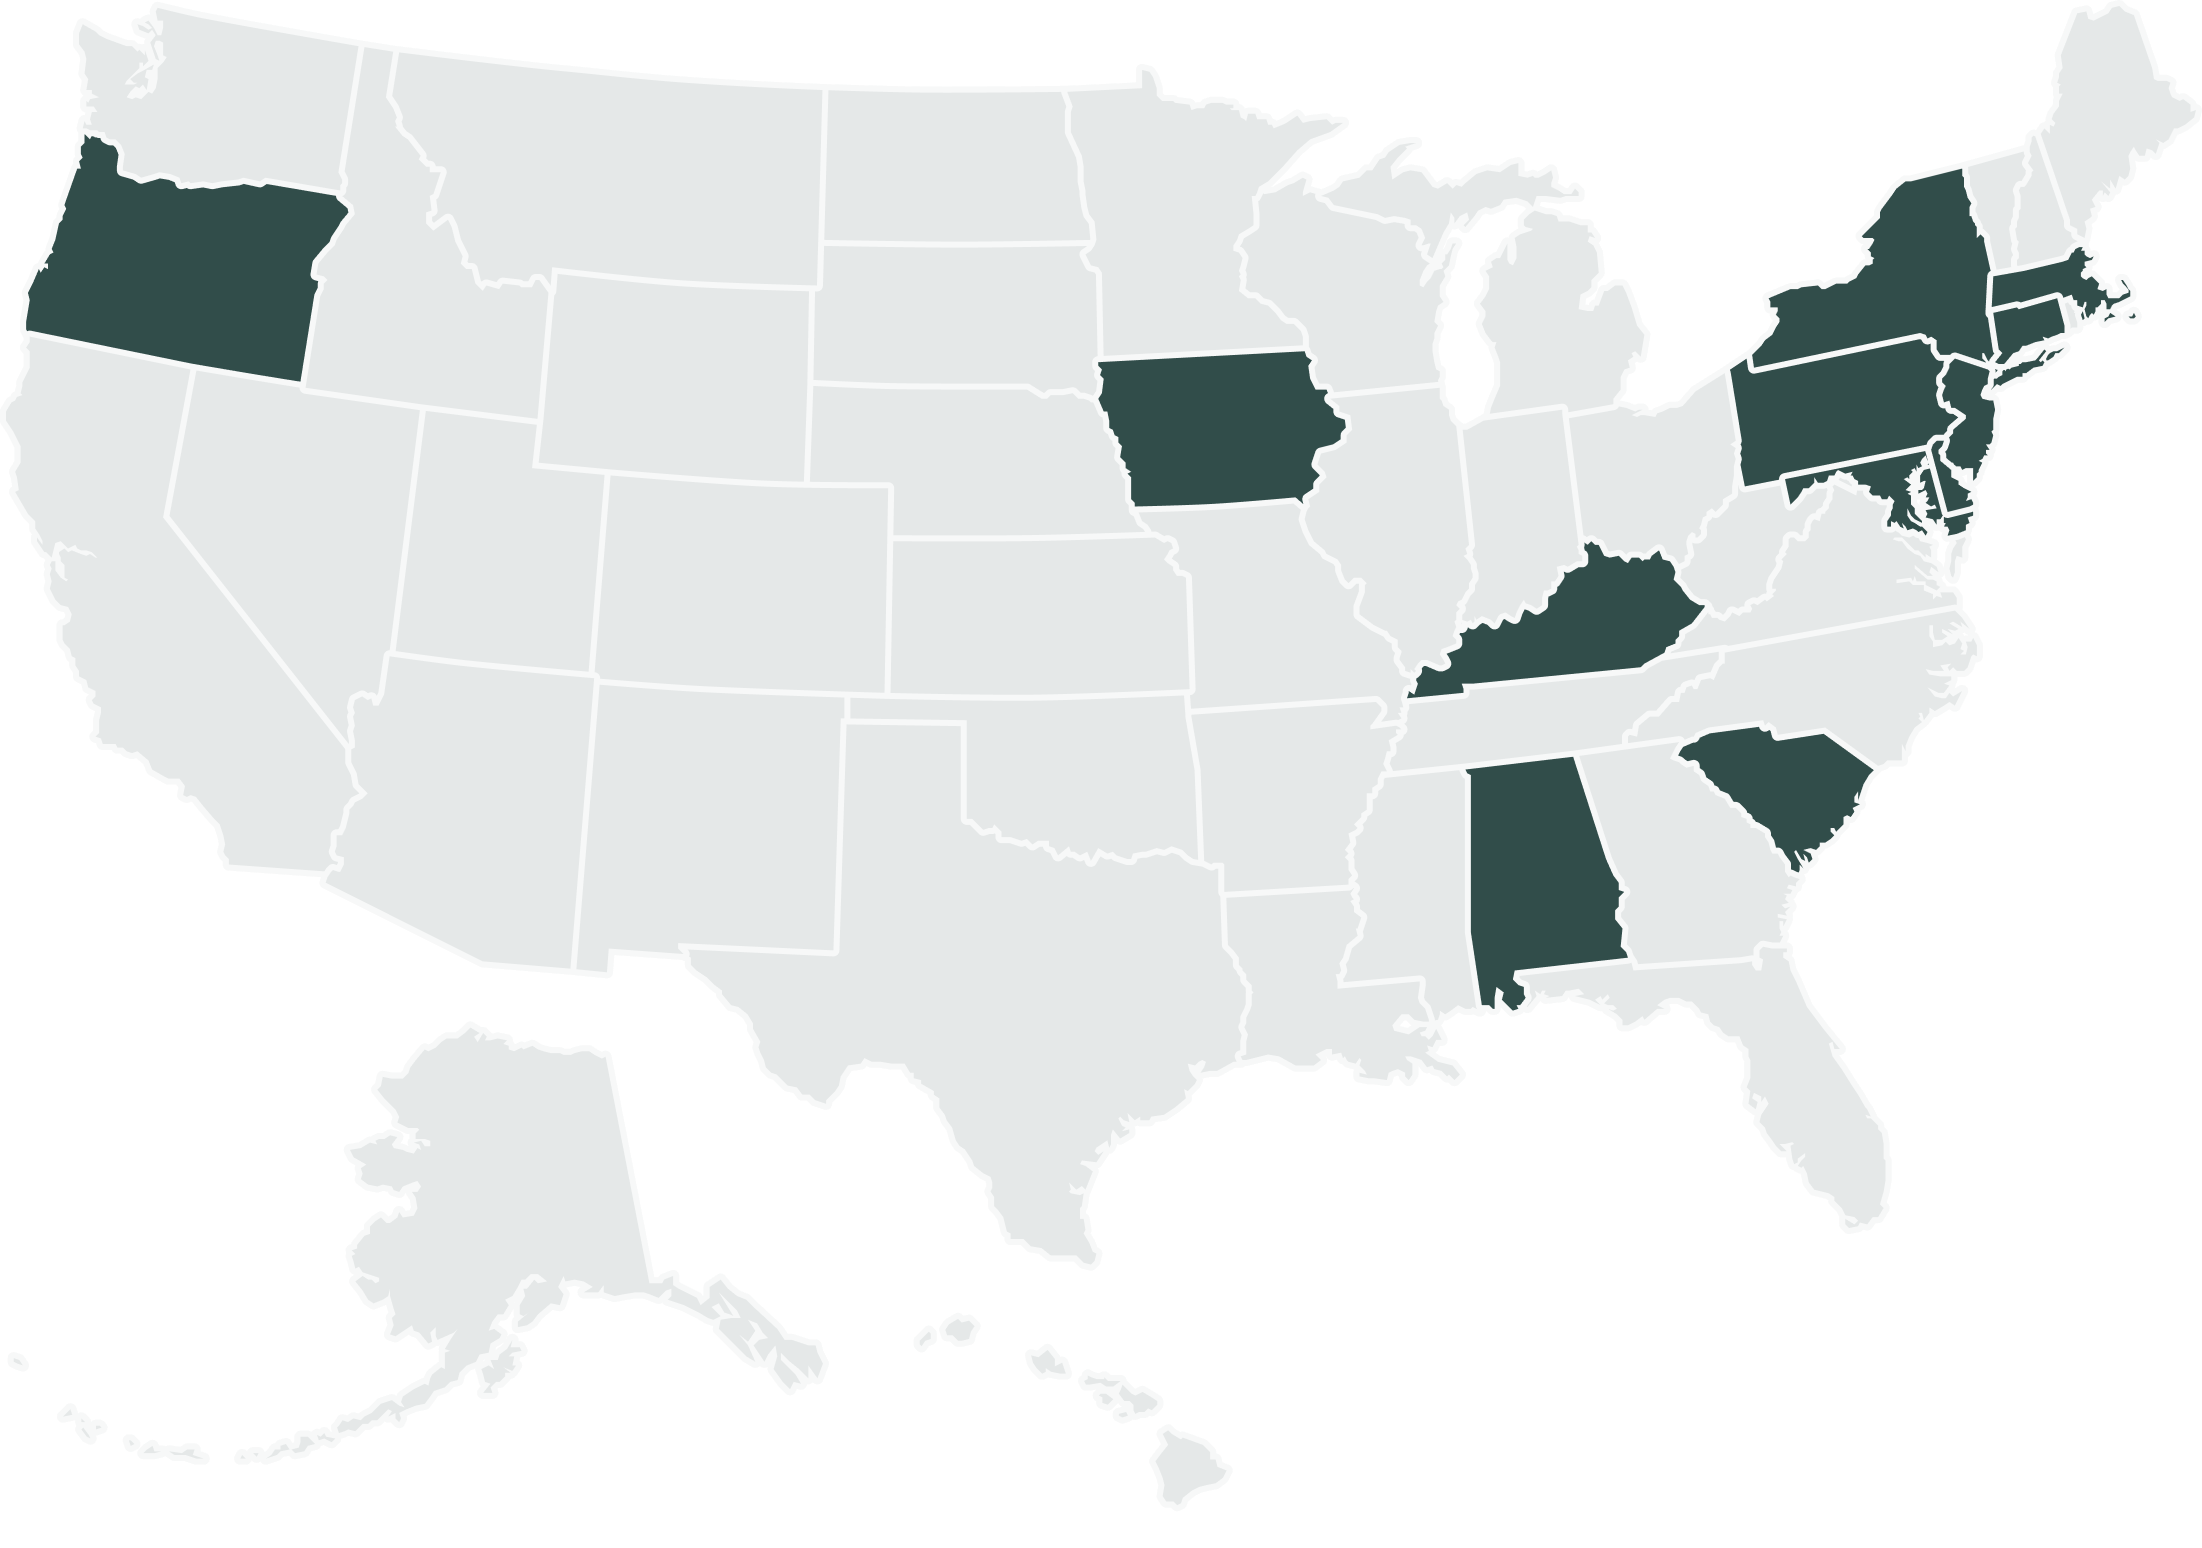 Map of the United States: supported states filled with a dark-grey color, the rest are light-grey